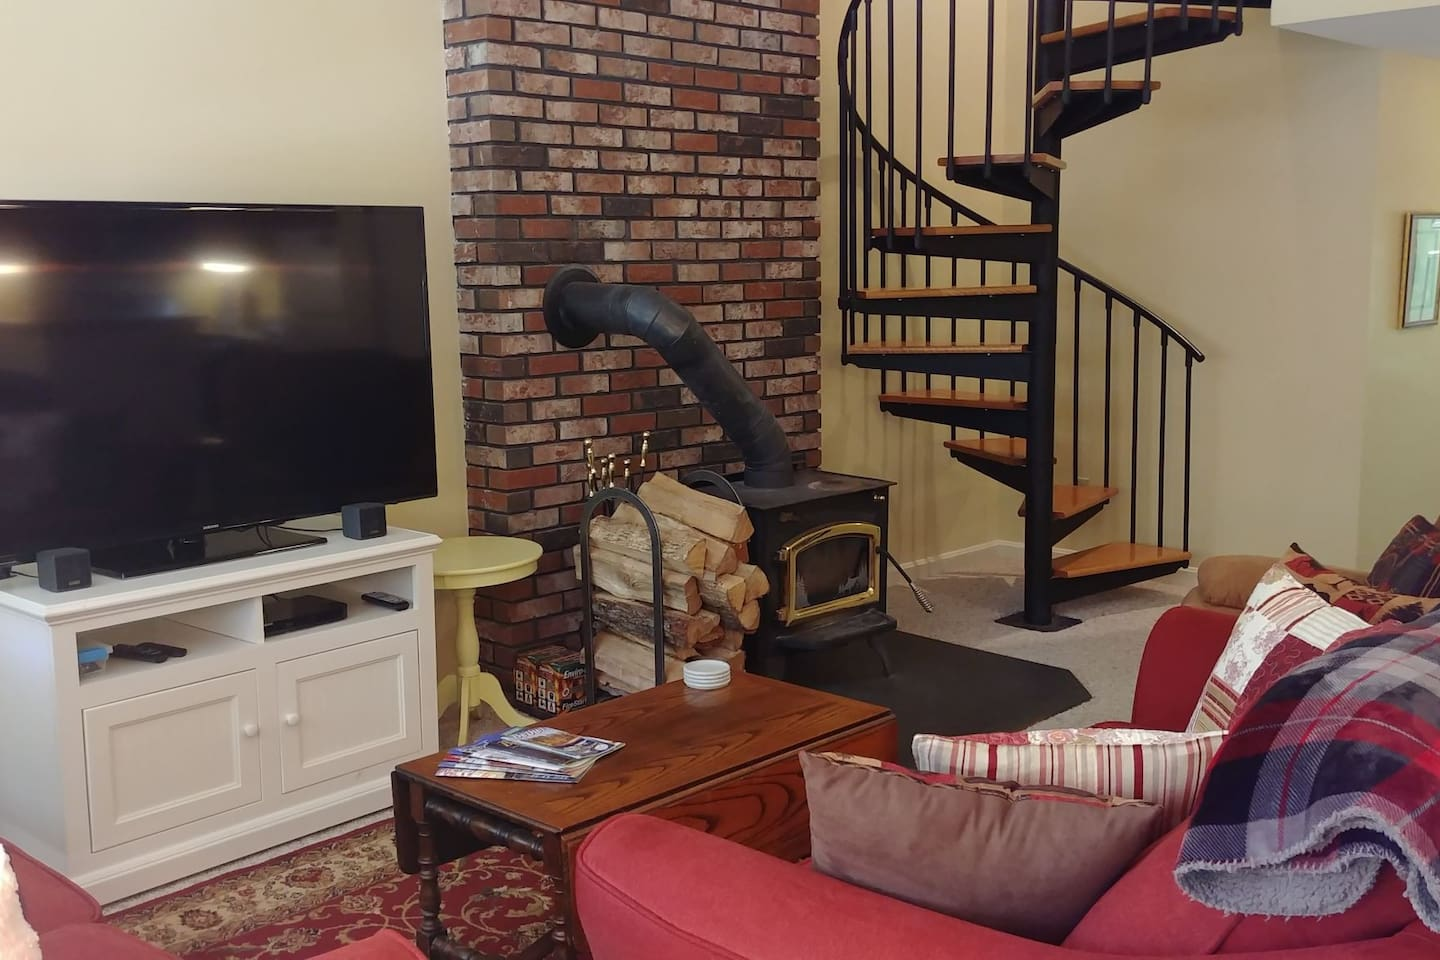 Wood stove and spiral staircase